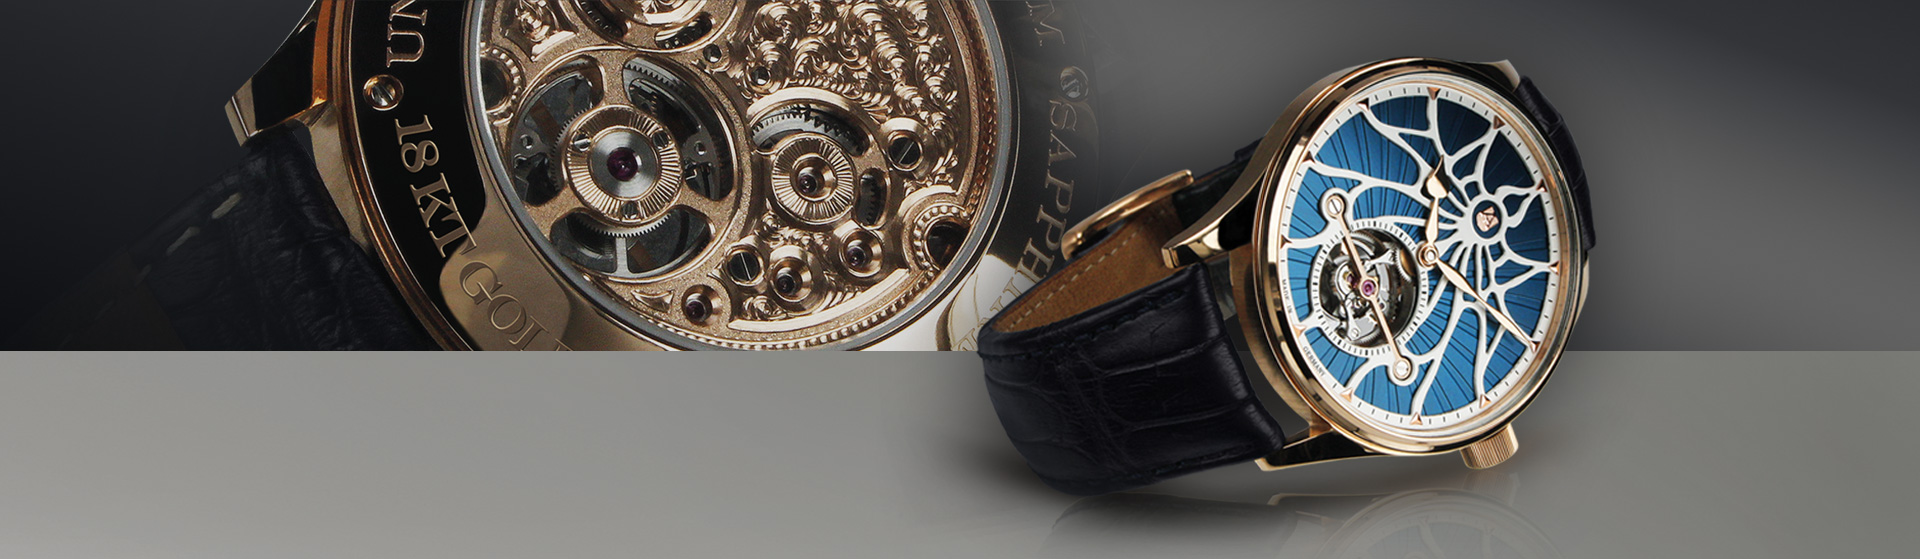 tourbillion tomorrow uhr uhren unikate